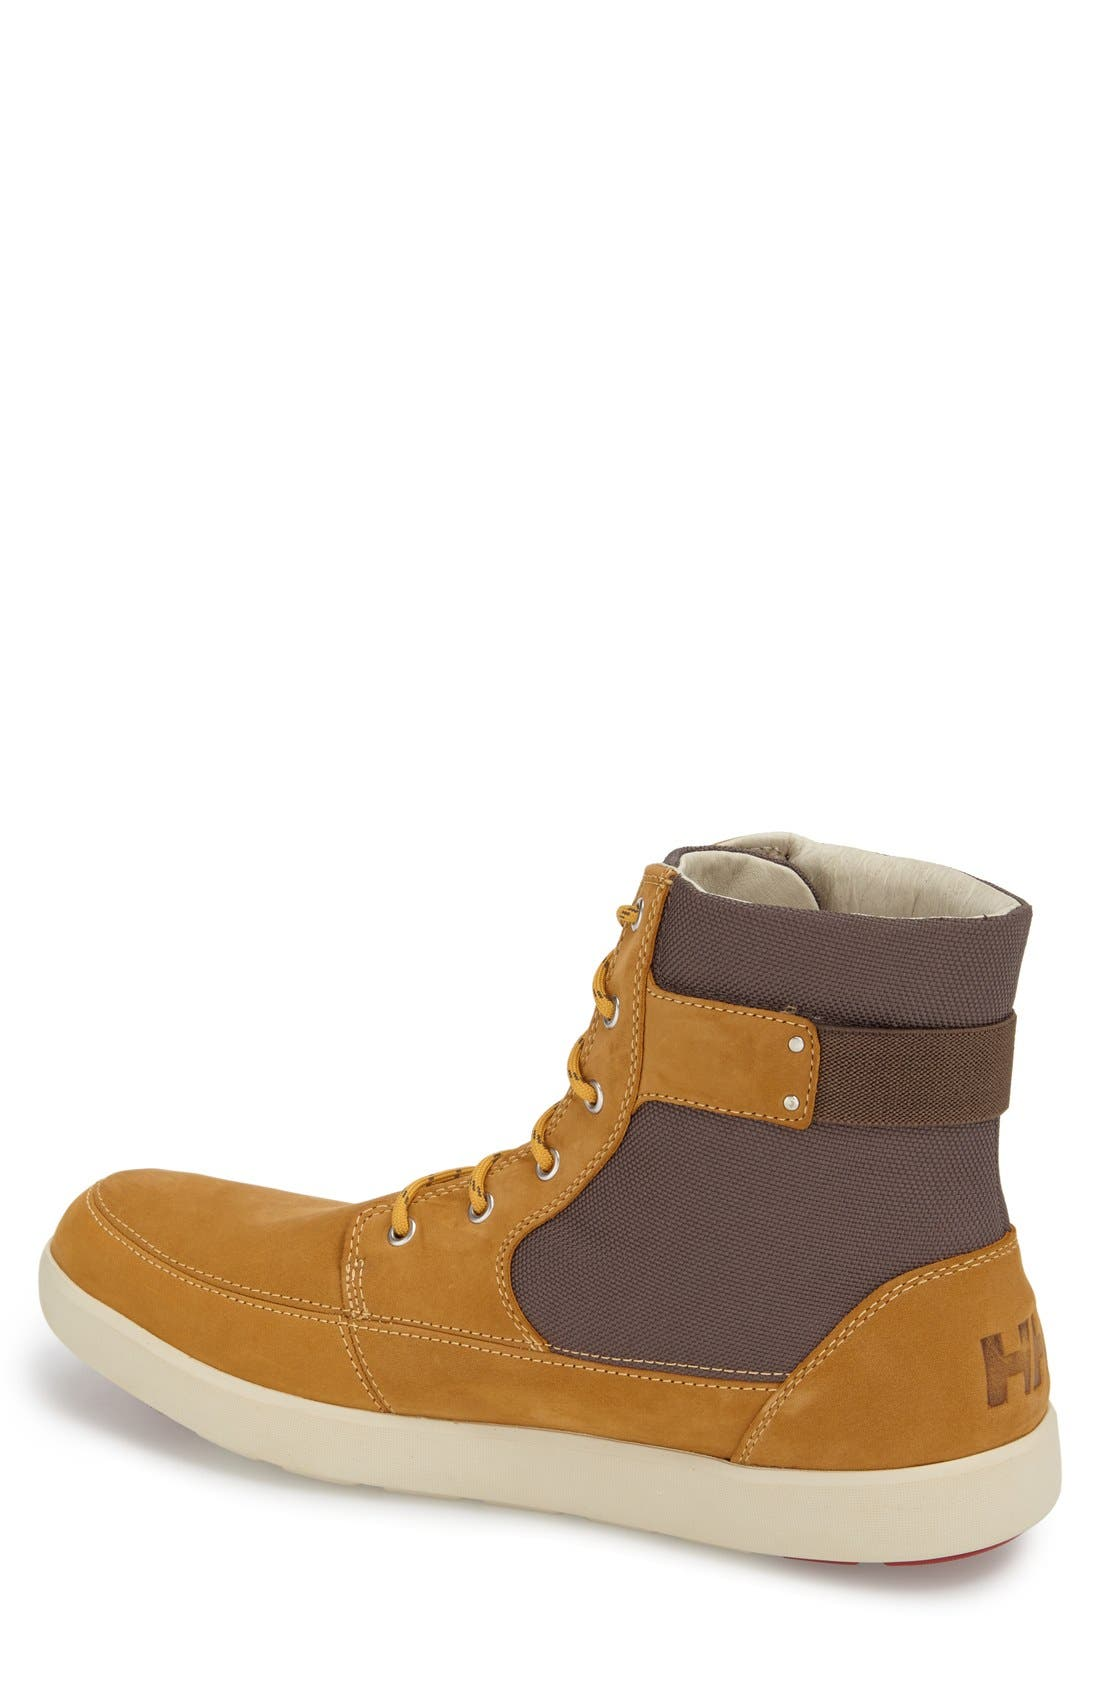 'Stockholm' Waterproof High Top Sneaker,                             Alternate thumbnail 4, color,                             New Wheat